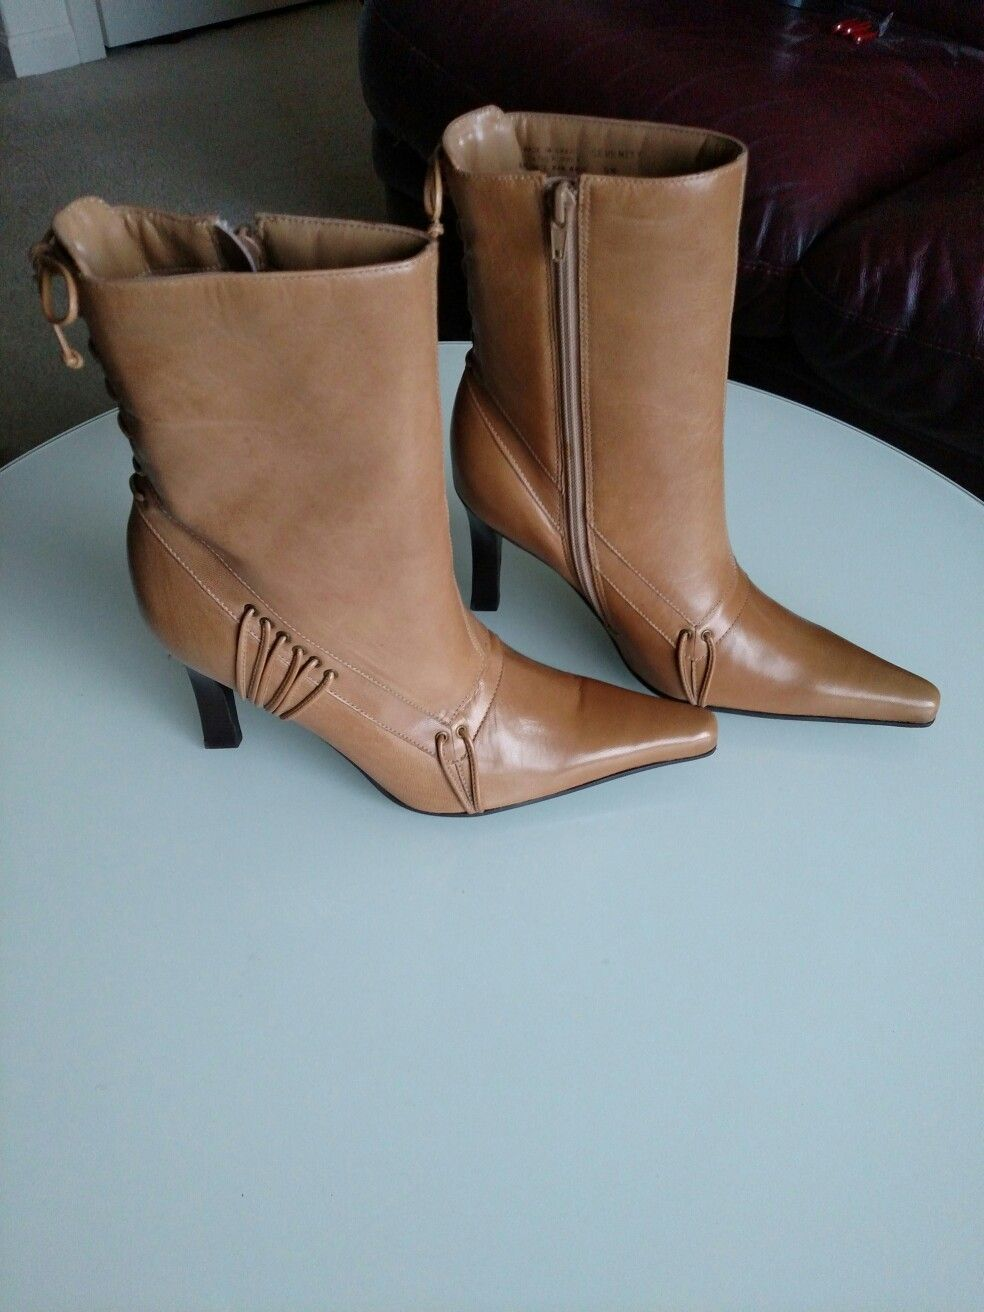 Brazilian leather boots, amazing design. | Vintage shoes for every ...